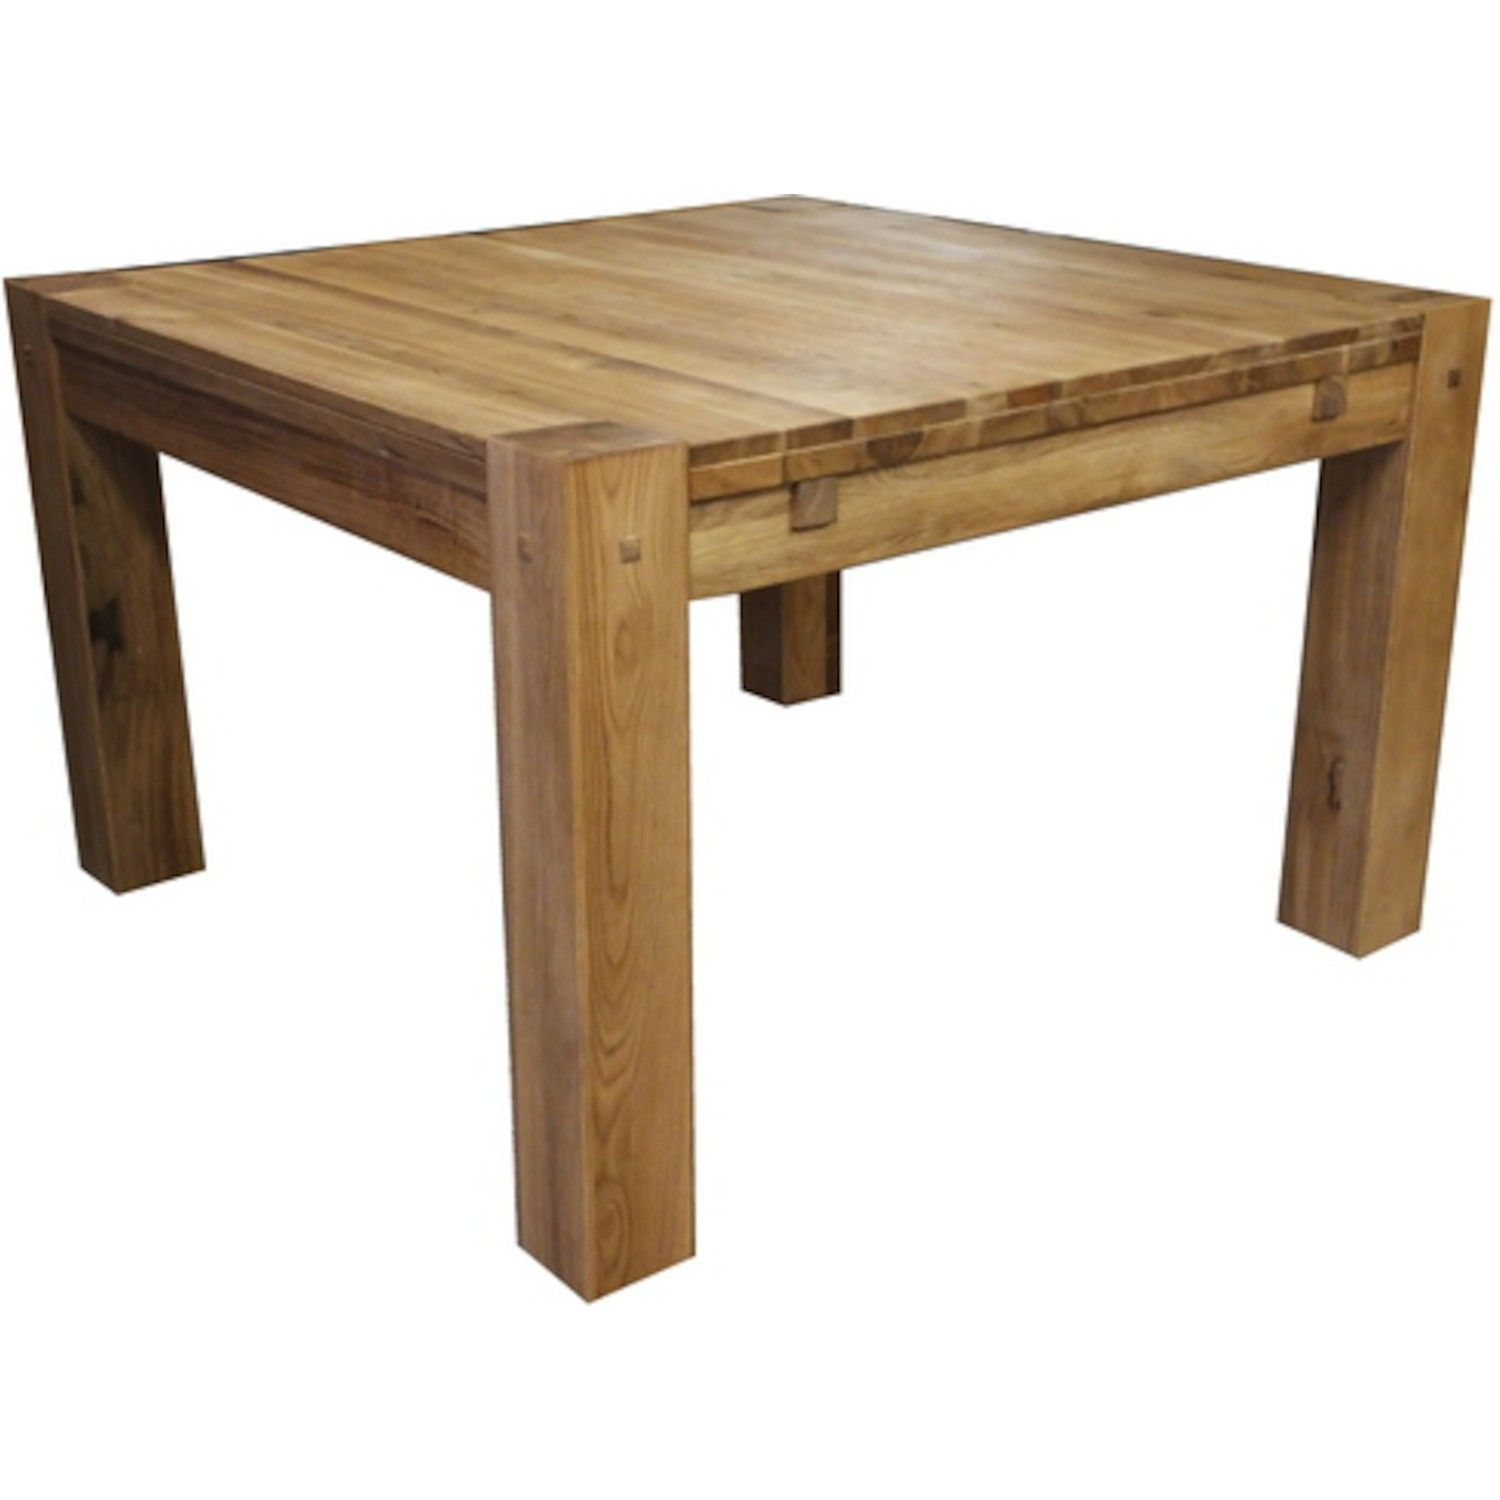 Table carr en 2019 tables table carr e table carr e bois et table - Meuble malaisie ...